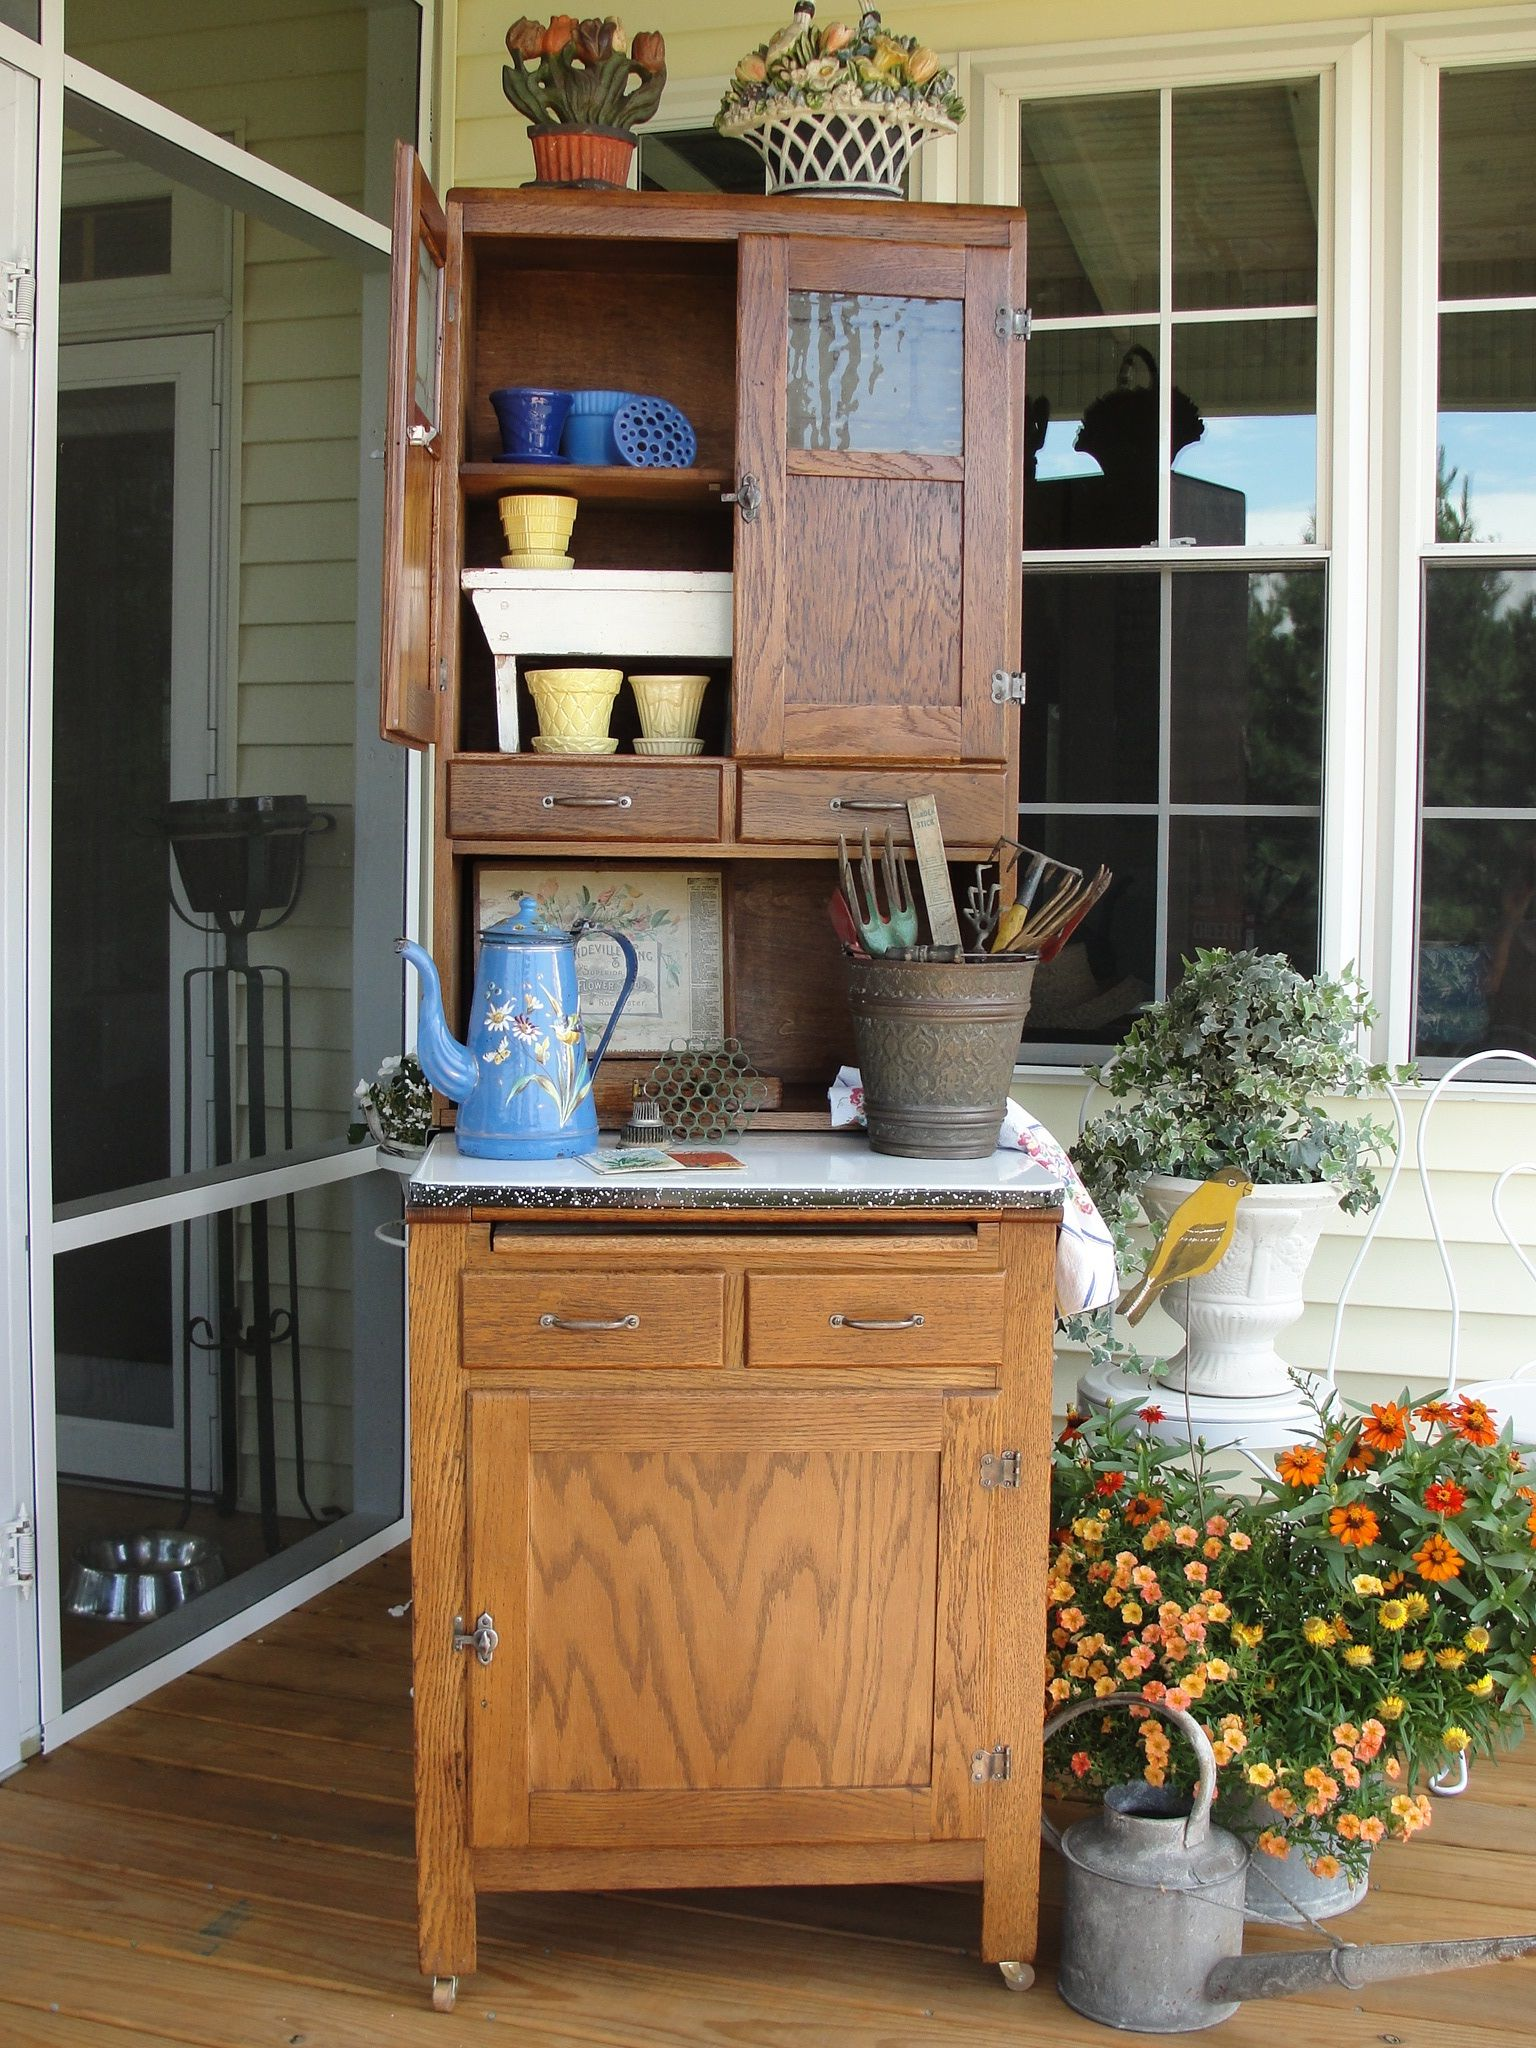 Small Apartment Size Hoosier With Vintage Garden Collectibles Antique Cabinet